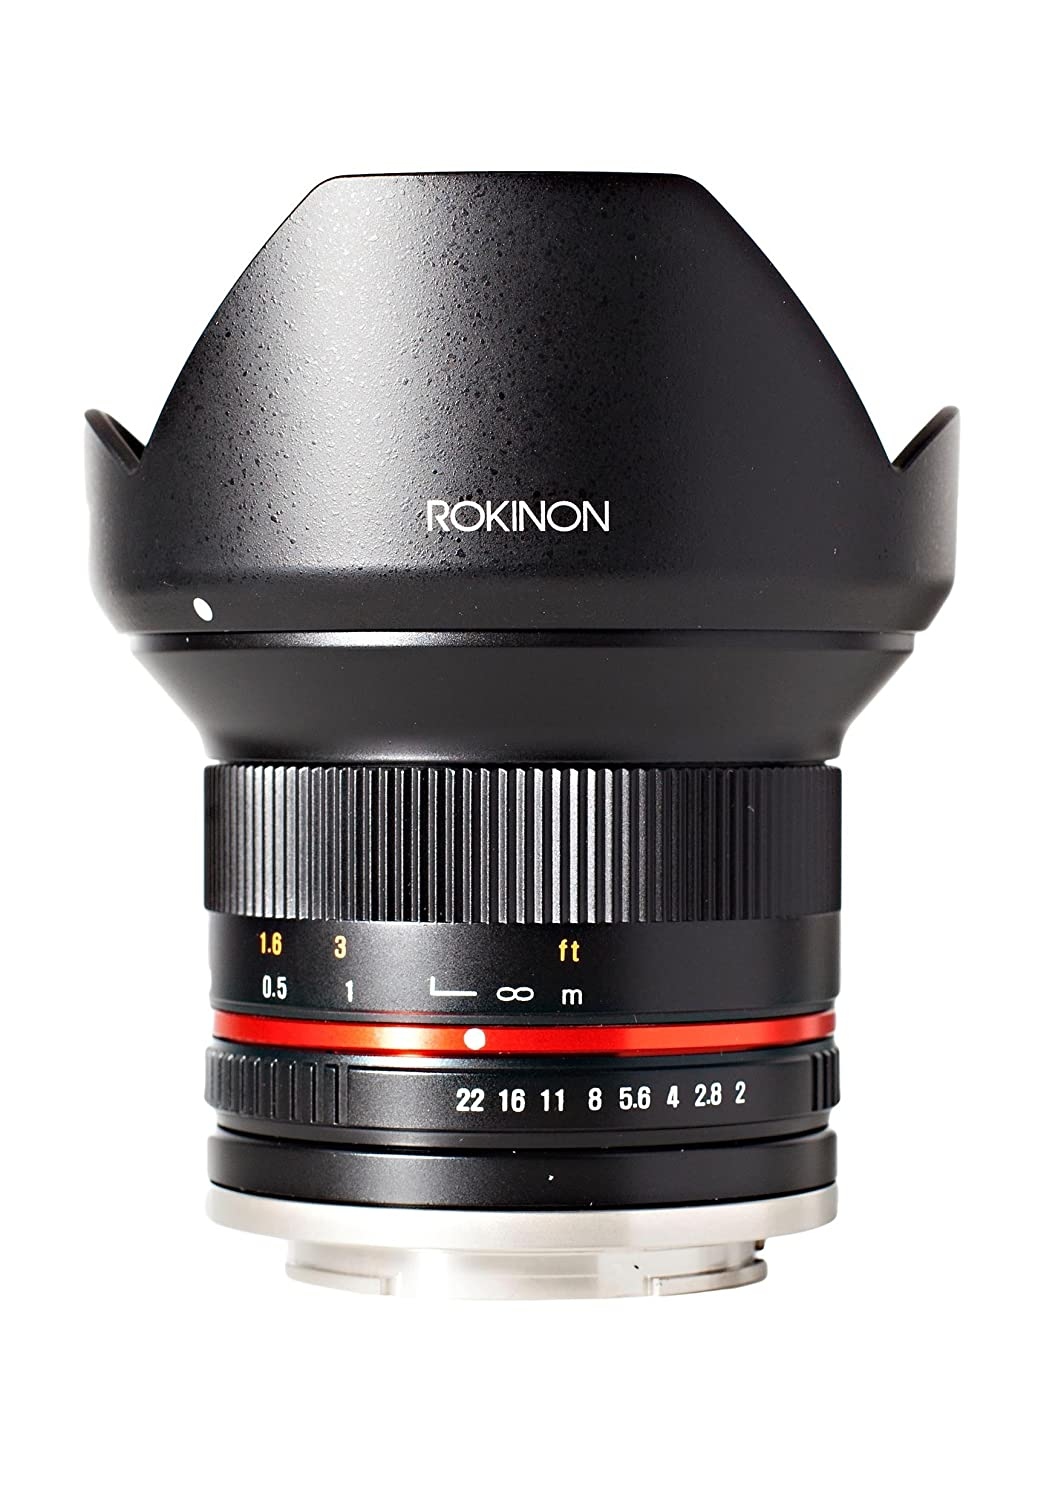 Rokinon 12mm f/2 for Astrophotography